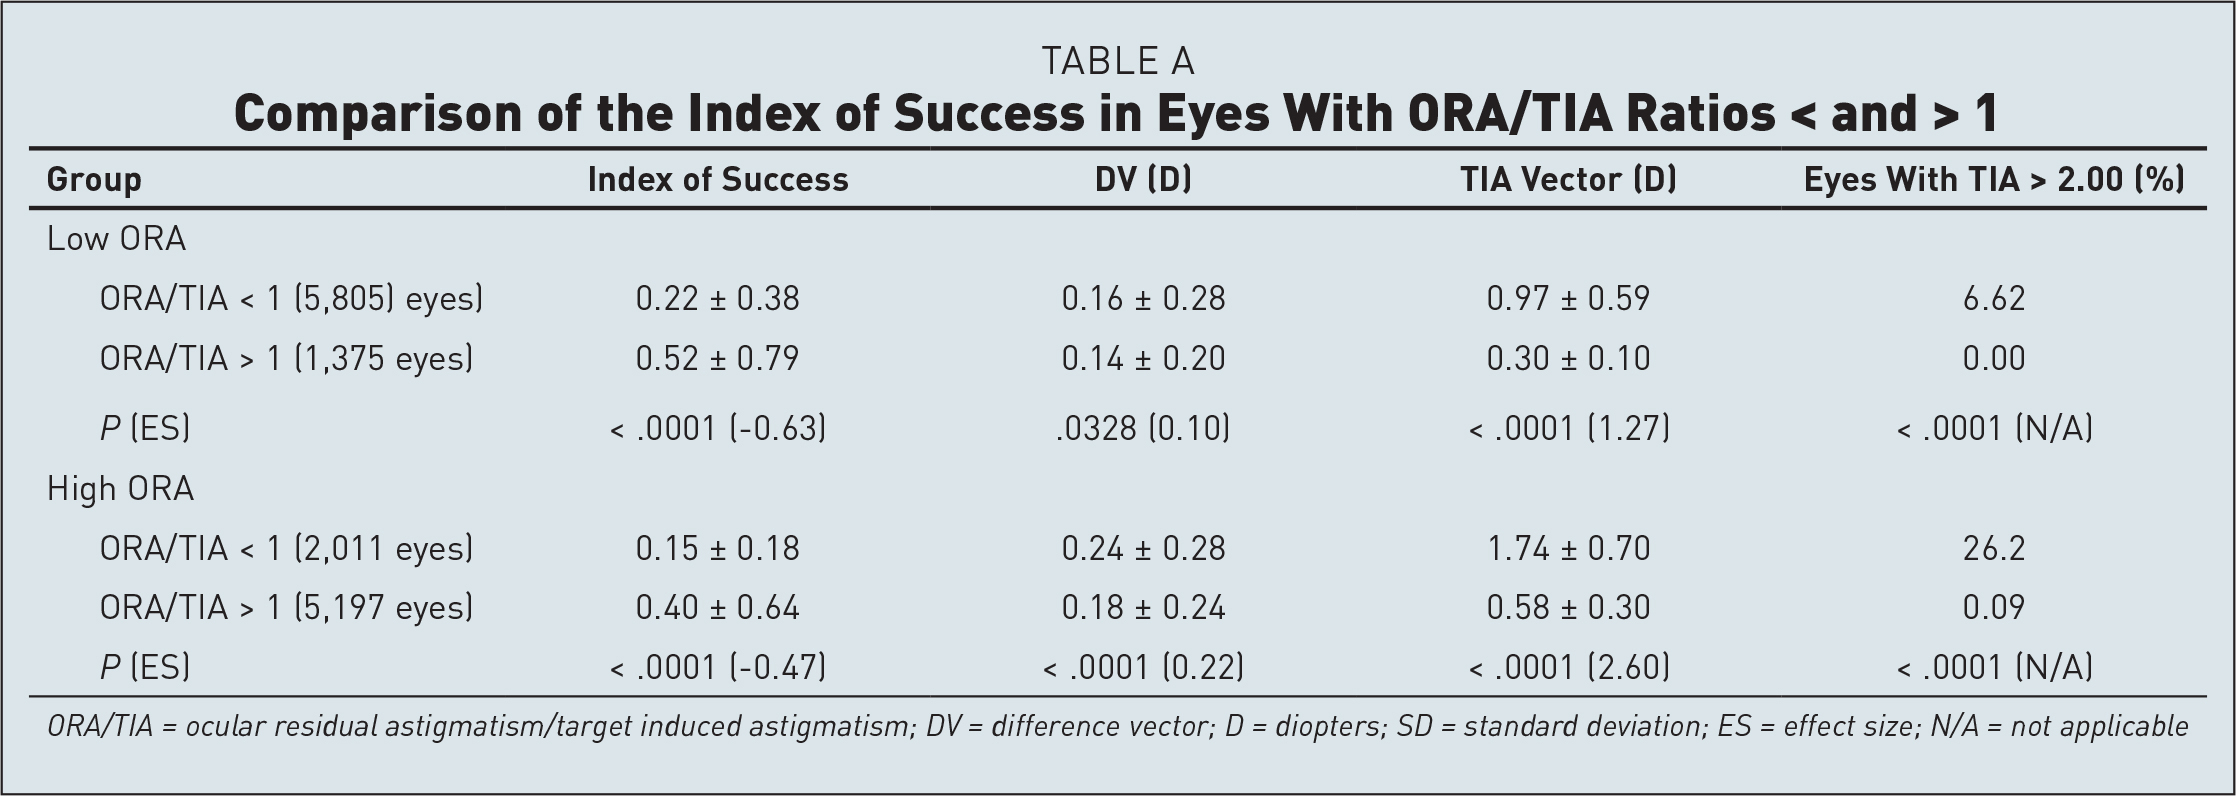 Comparison of the Index of Success in Eyes With ORA/TIA Ratios < and > 1